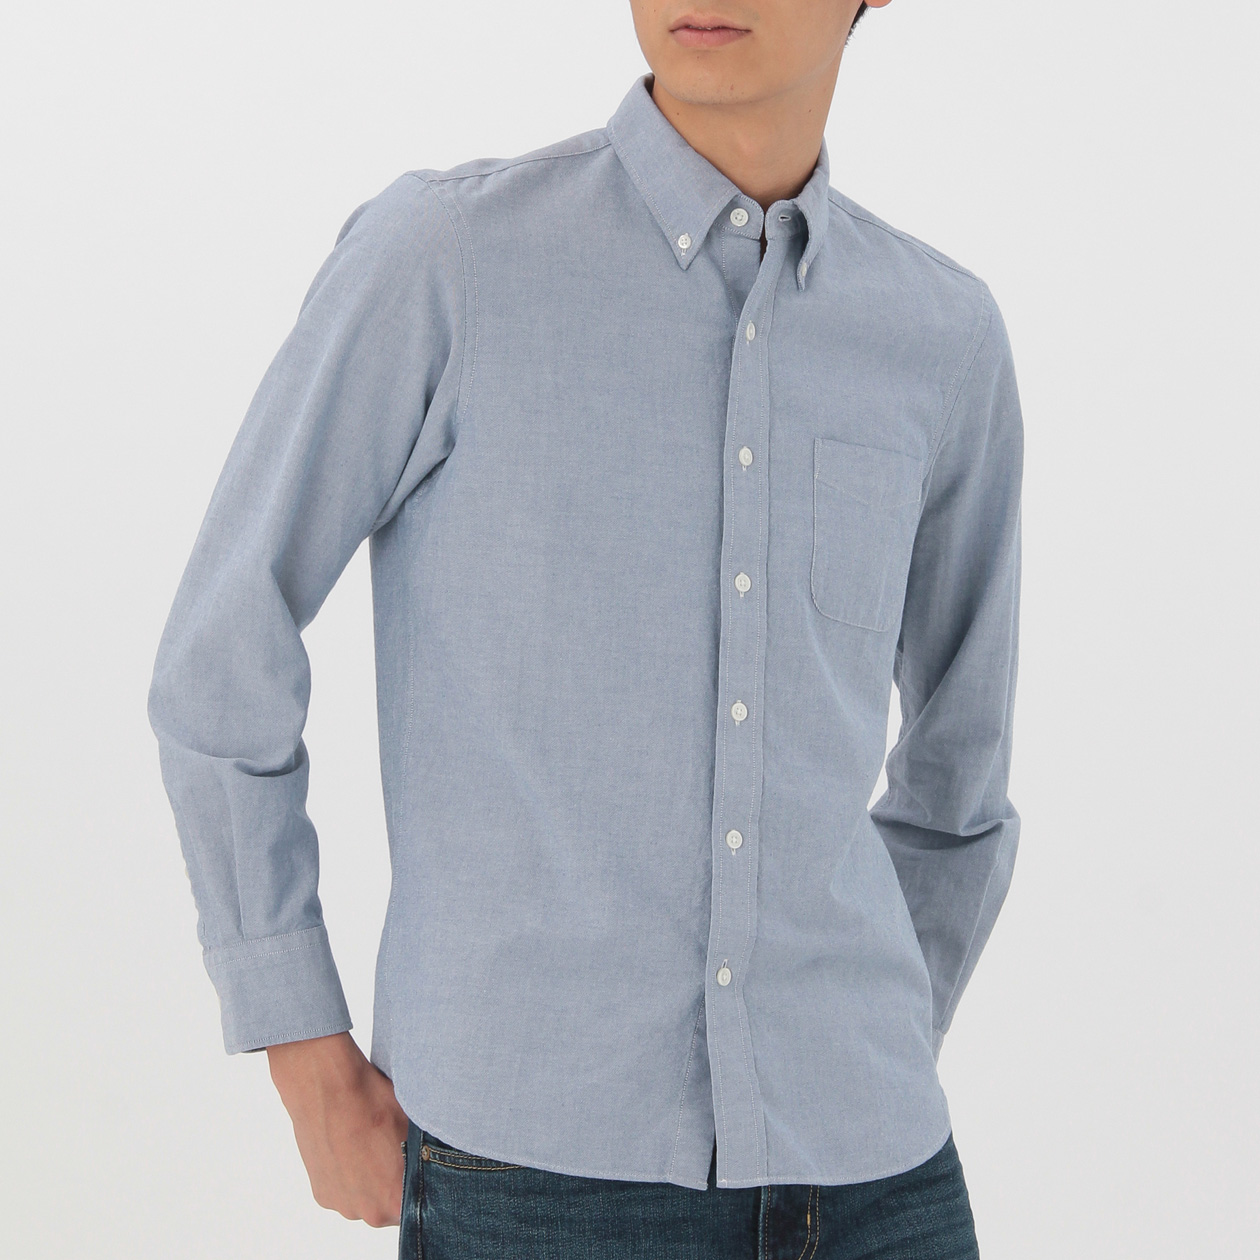 Men 39 s organic cotton washed oxford button down shirt for Organic cotton button down shirts